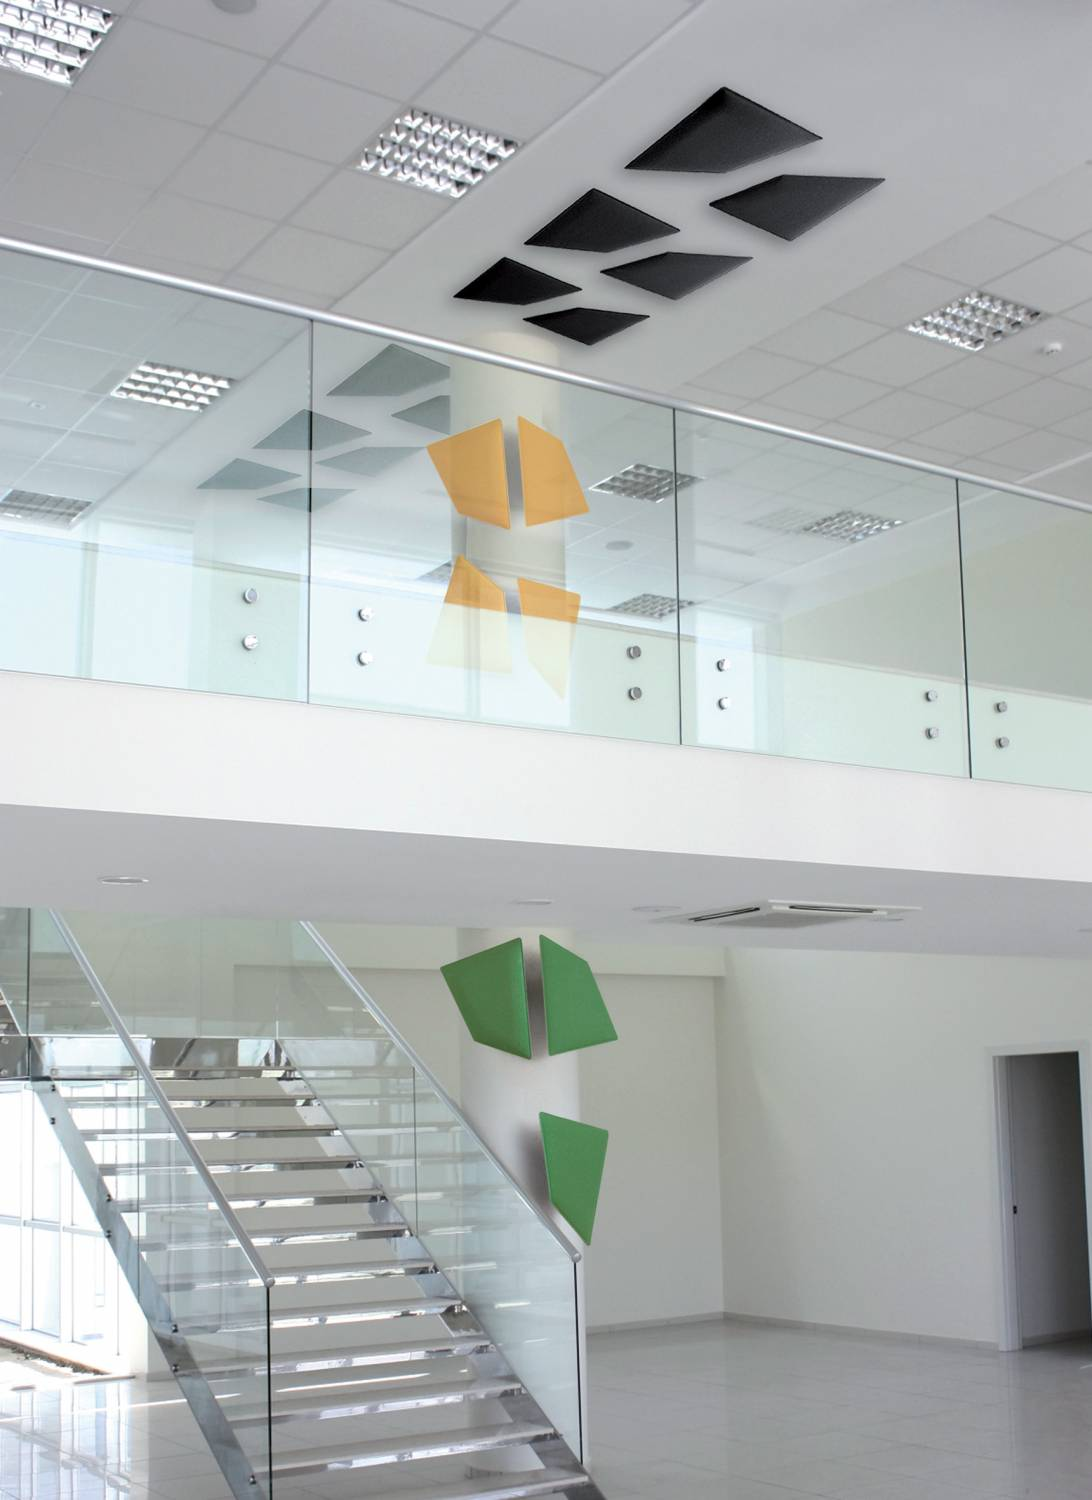 Flap-Wall-and-Ceiling-Mounted-Acoustic-Panels